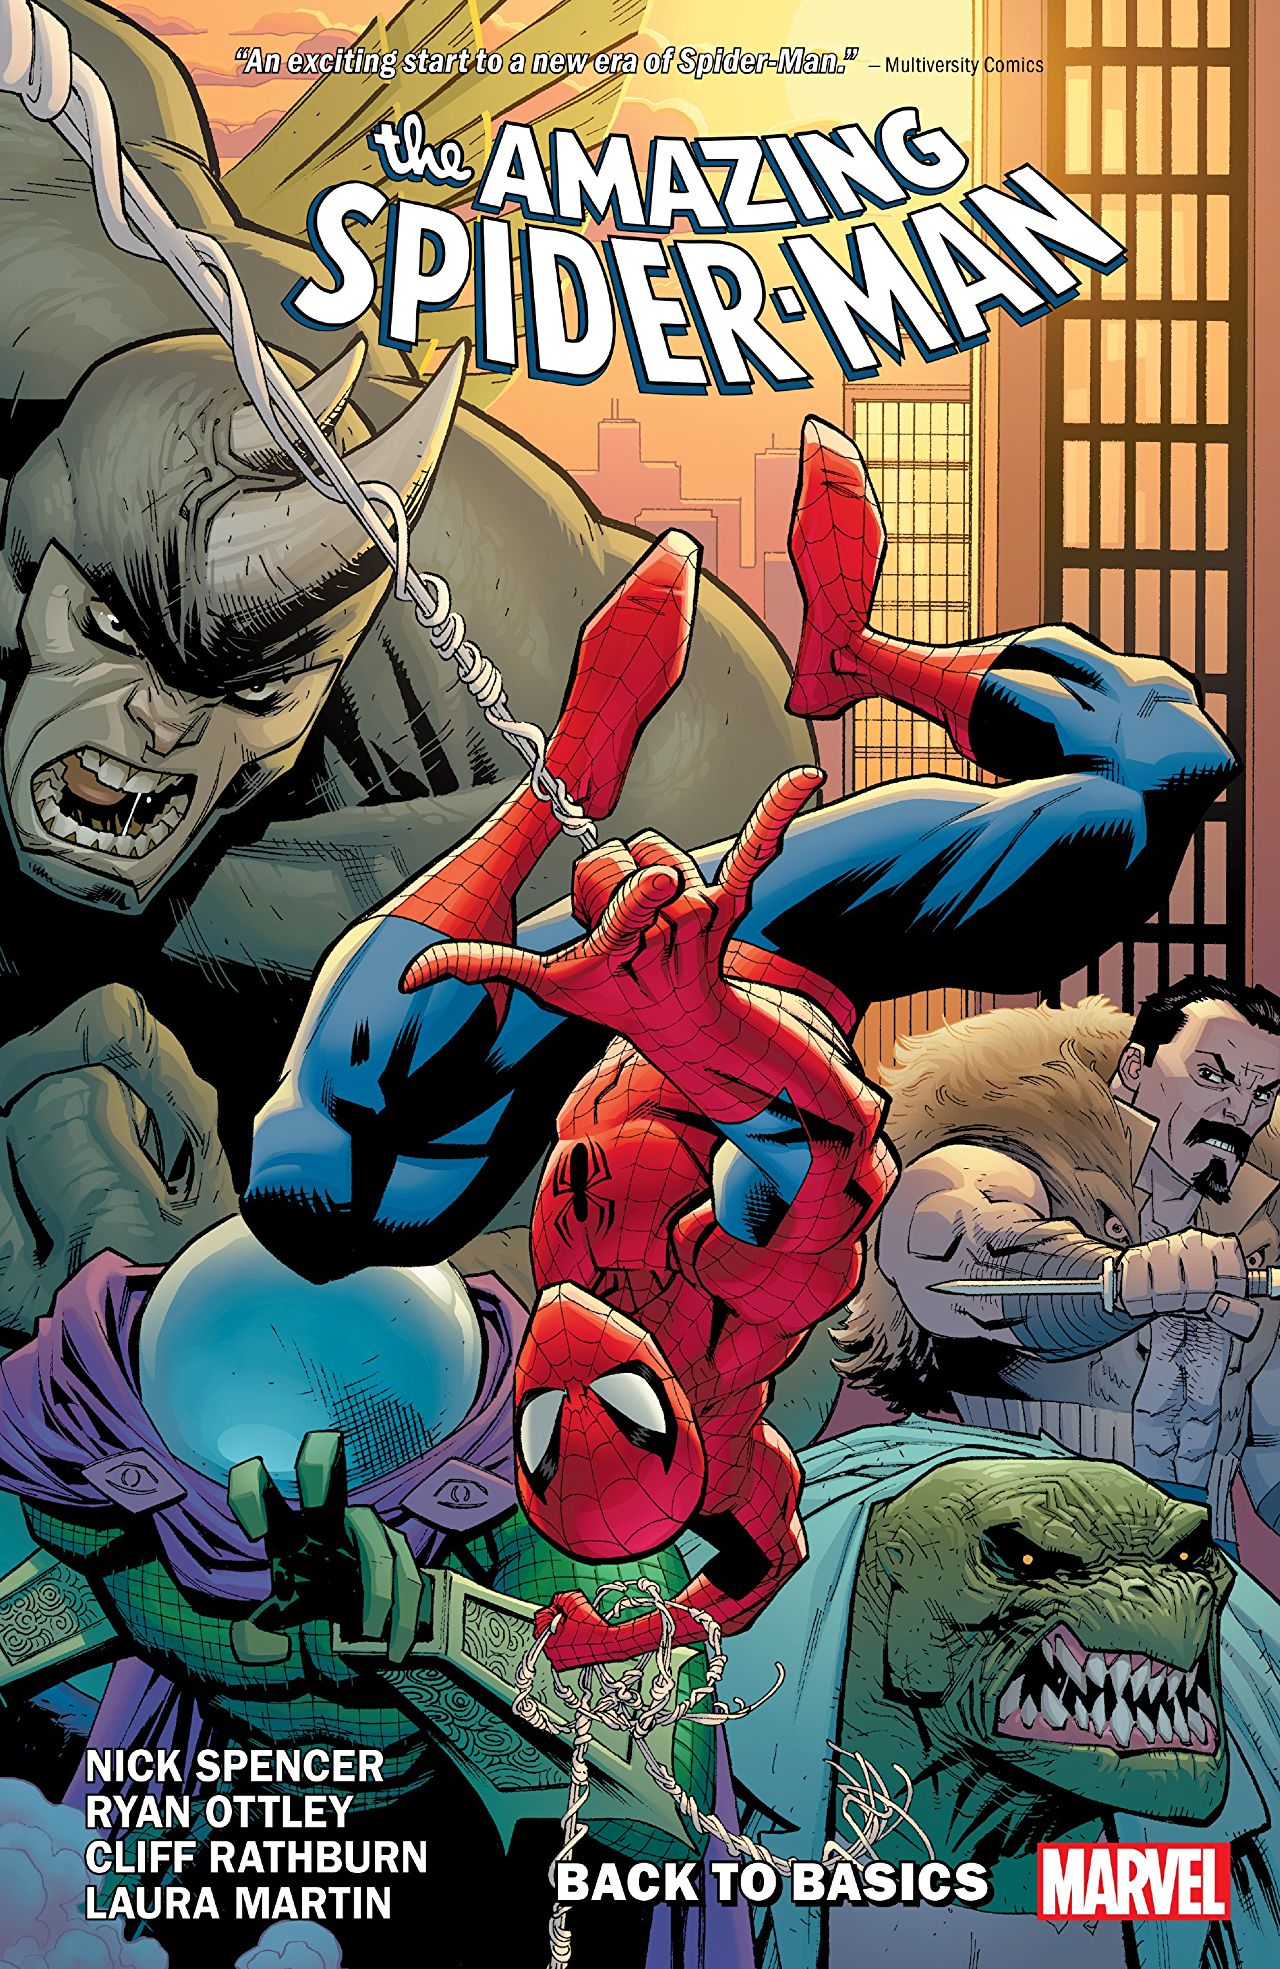 'Amazing Spider-Man Vol. 1: Back to Basics' is a perfect re-introduction for seasoned Spidey fans and wannabe webheads alike